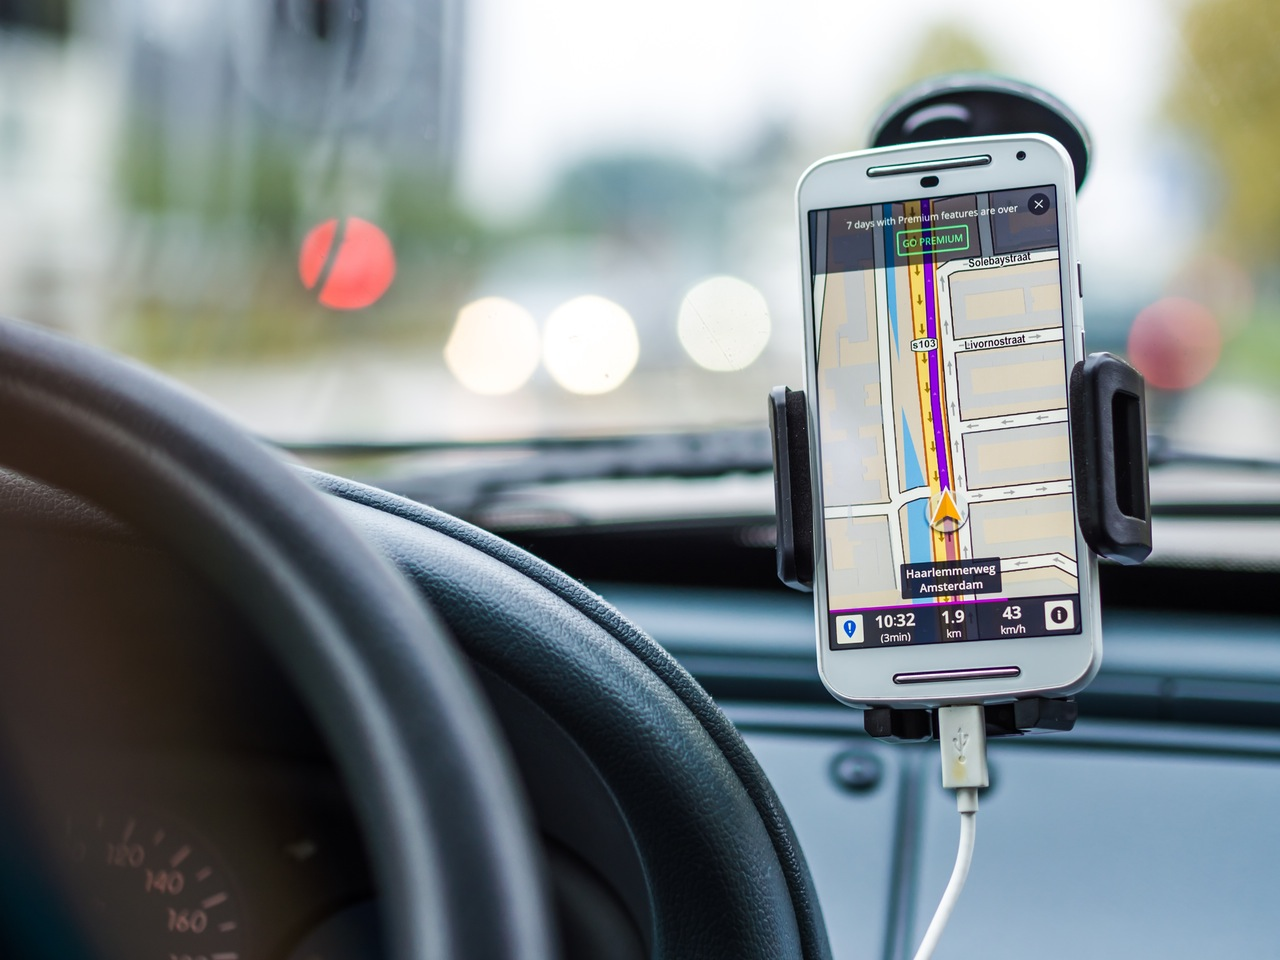 Mounted cell phone holder for car